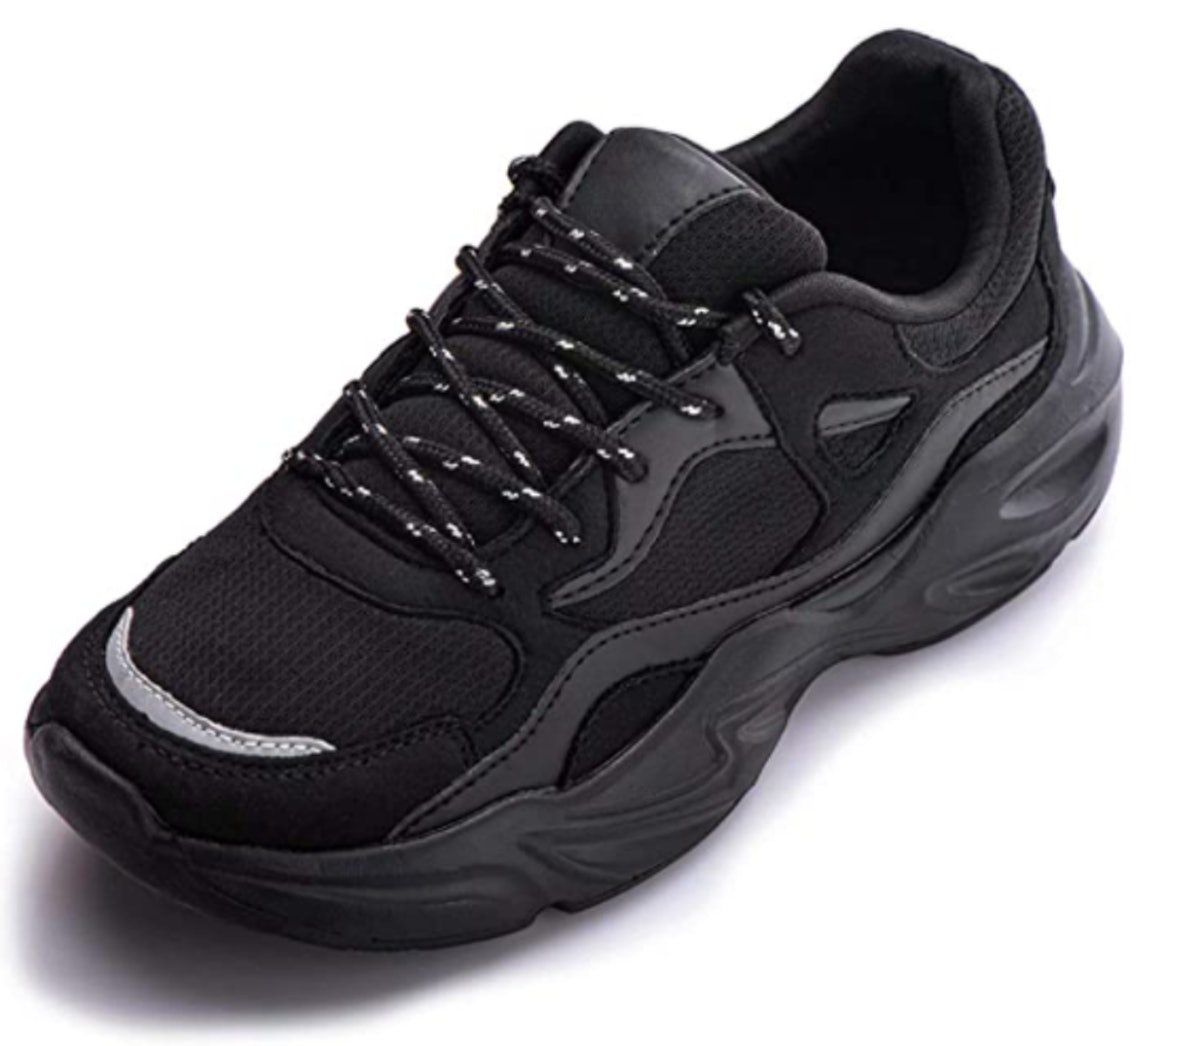 Harvest Land Womens Fashion Chunky Shoes Lightweight Athletic Sports Trainer Sneakers Tennis Shoes f...